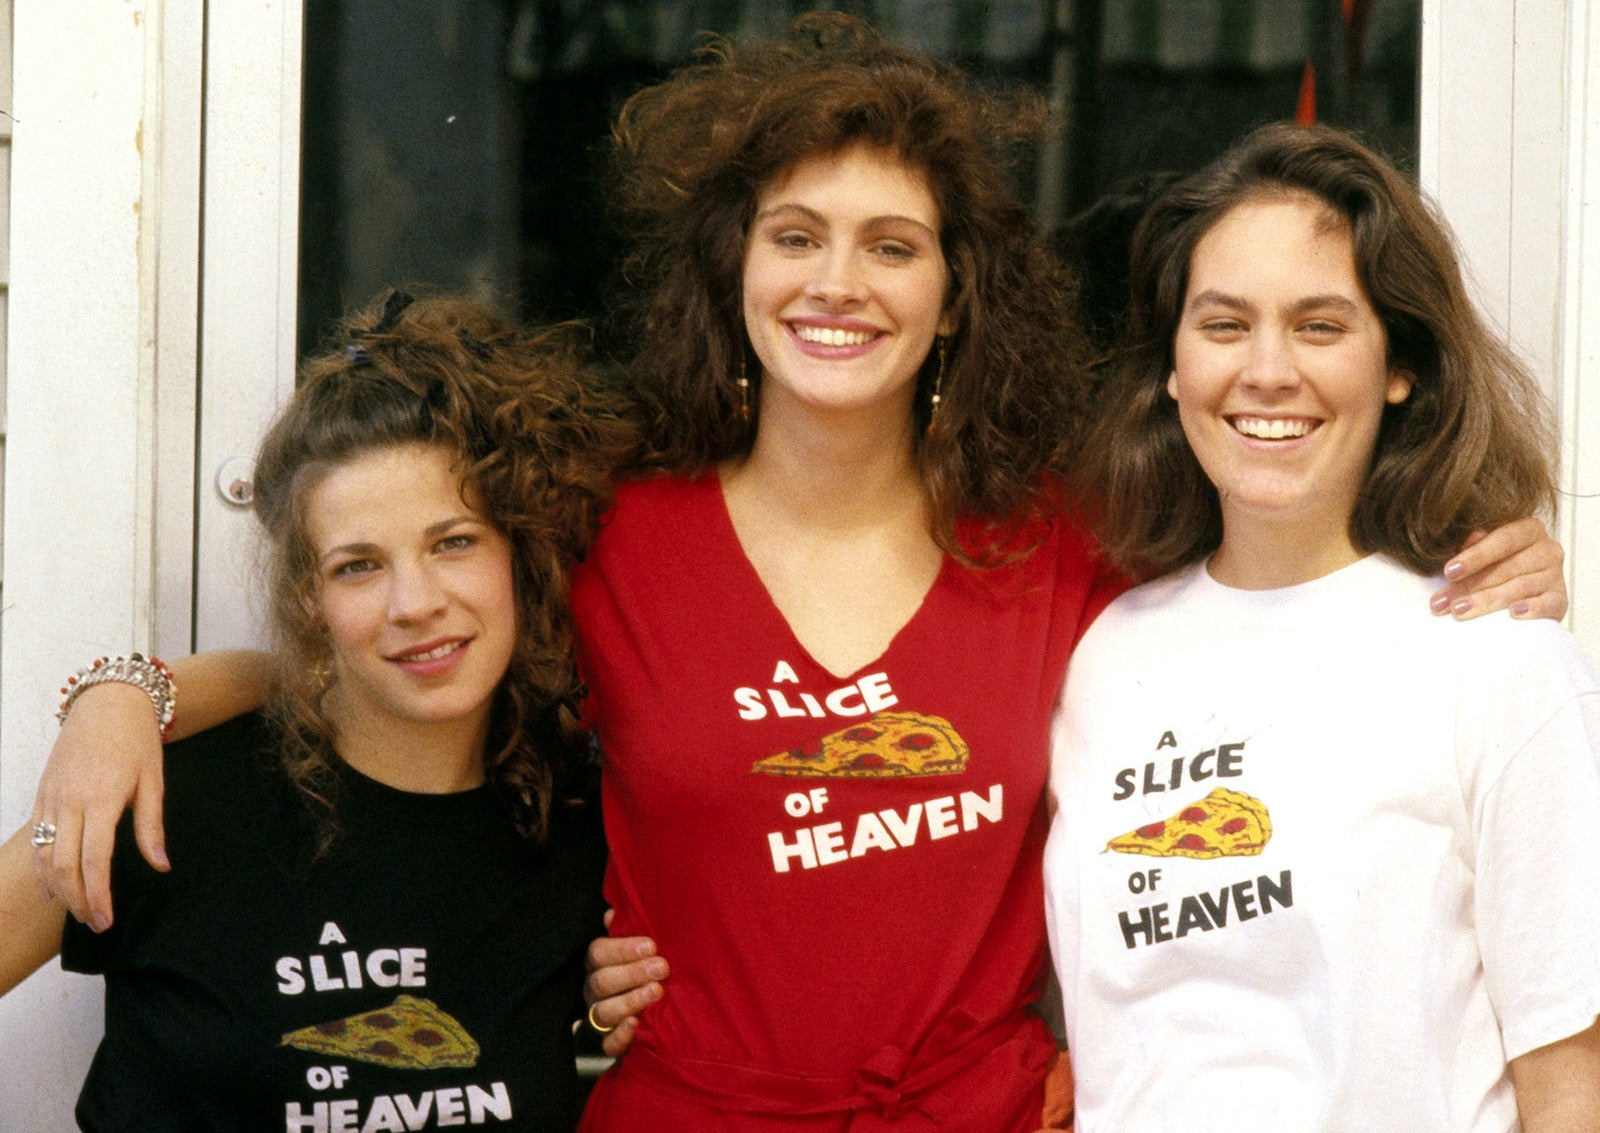 Julia Roberts with Lili Taylor and Annabeth Gish in her first major starring role in Mystic Pizza, 1988.